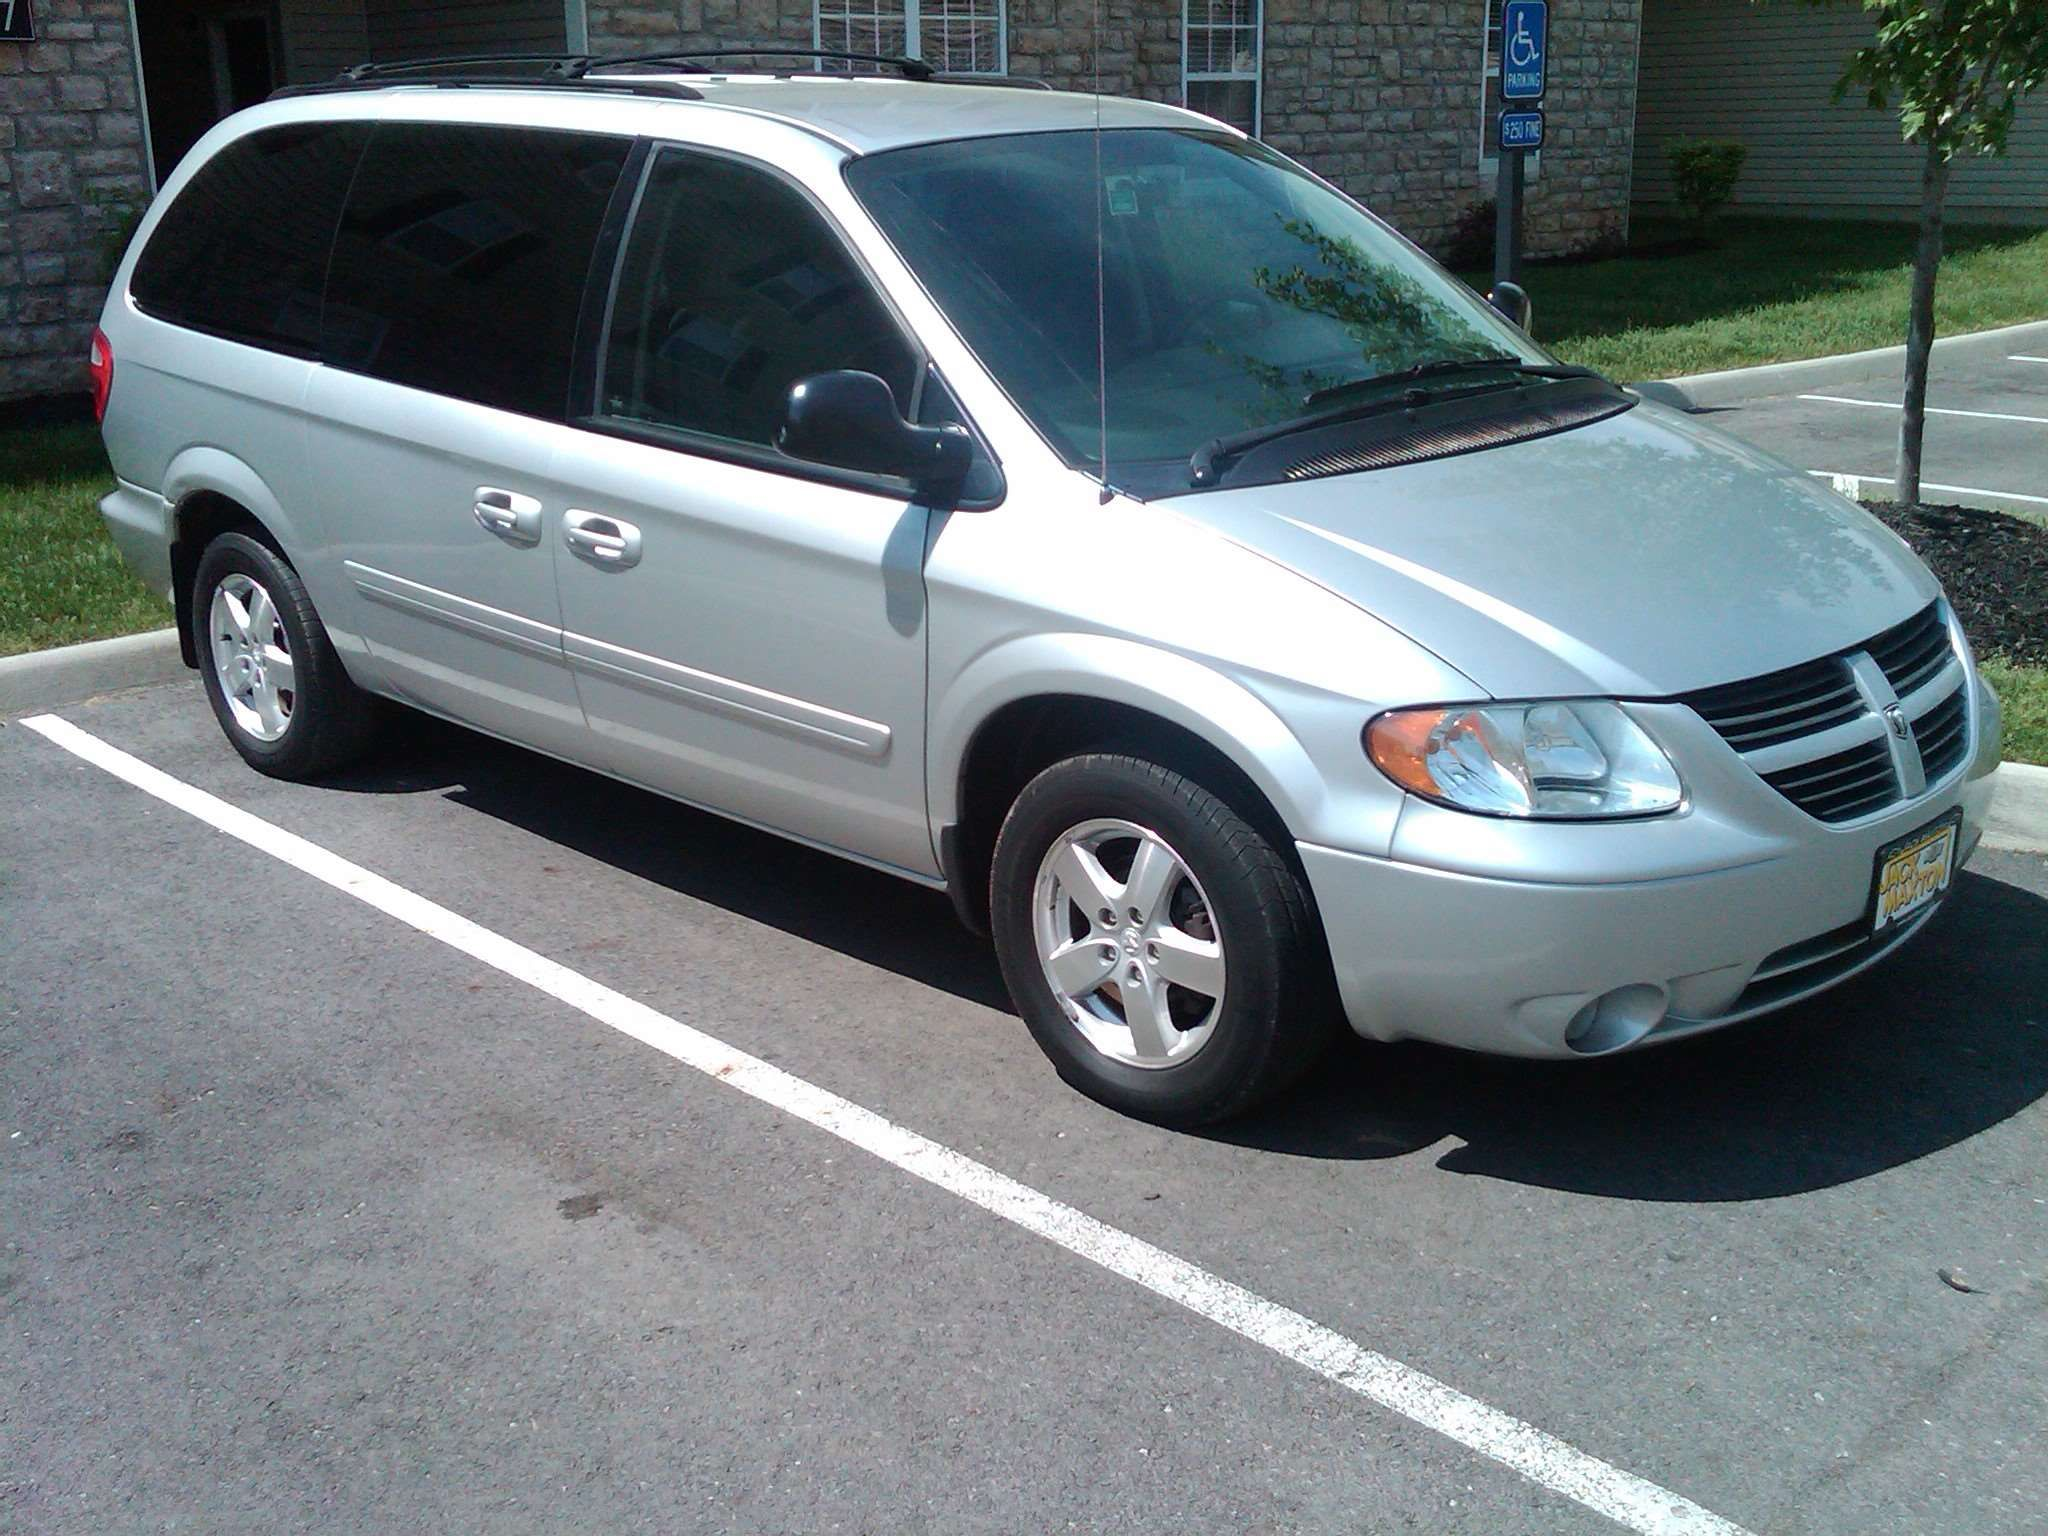 Make Dodge Model Grand Caravan Year 2006 Body Style Minivan